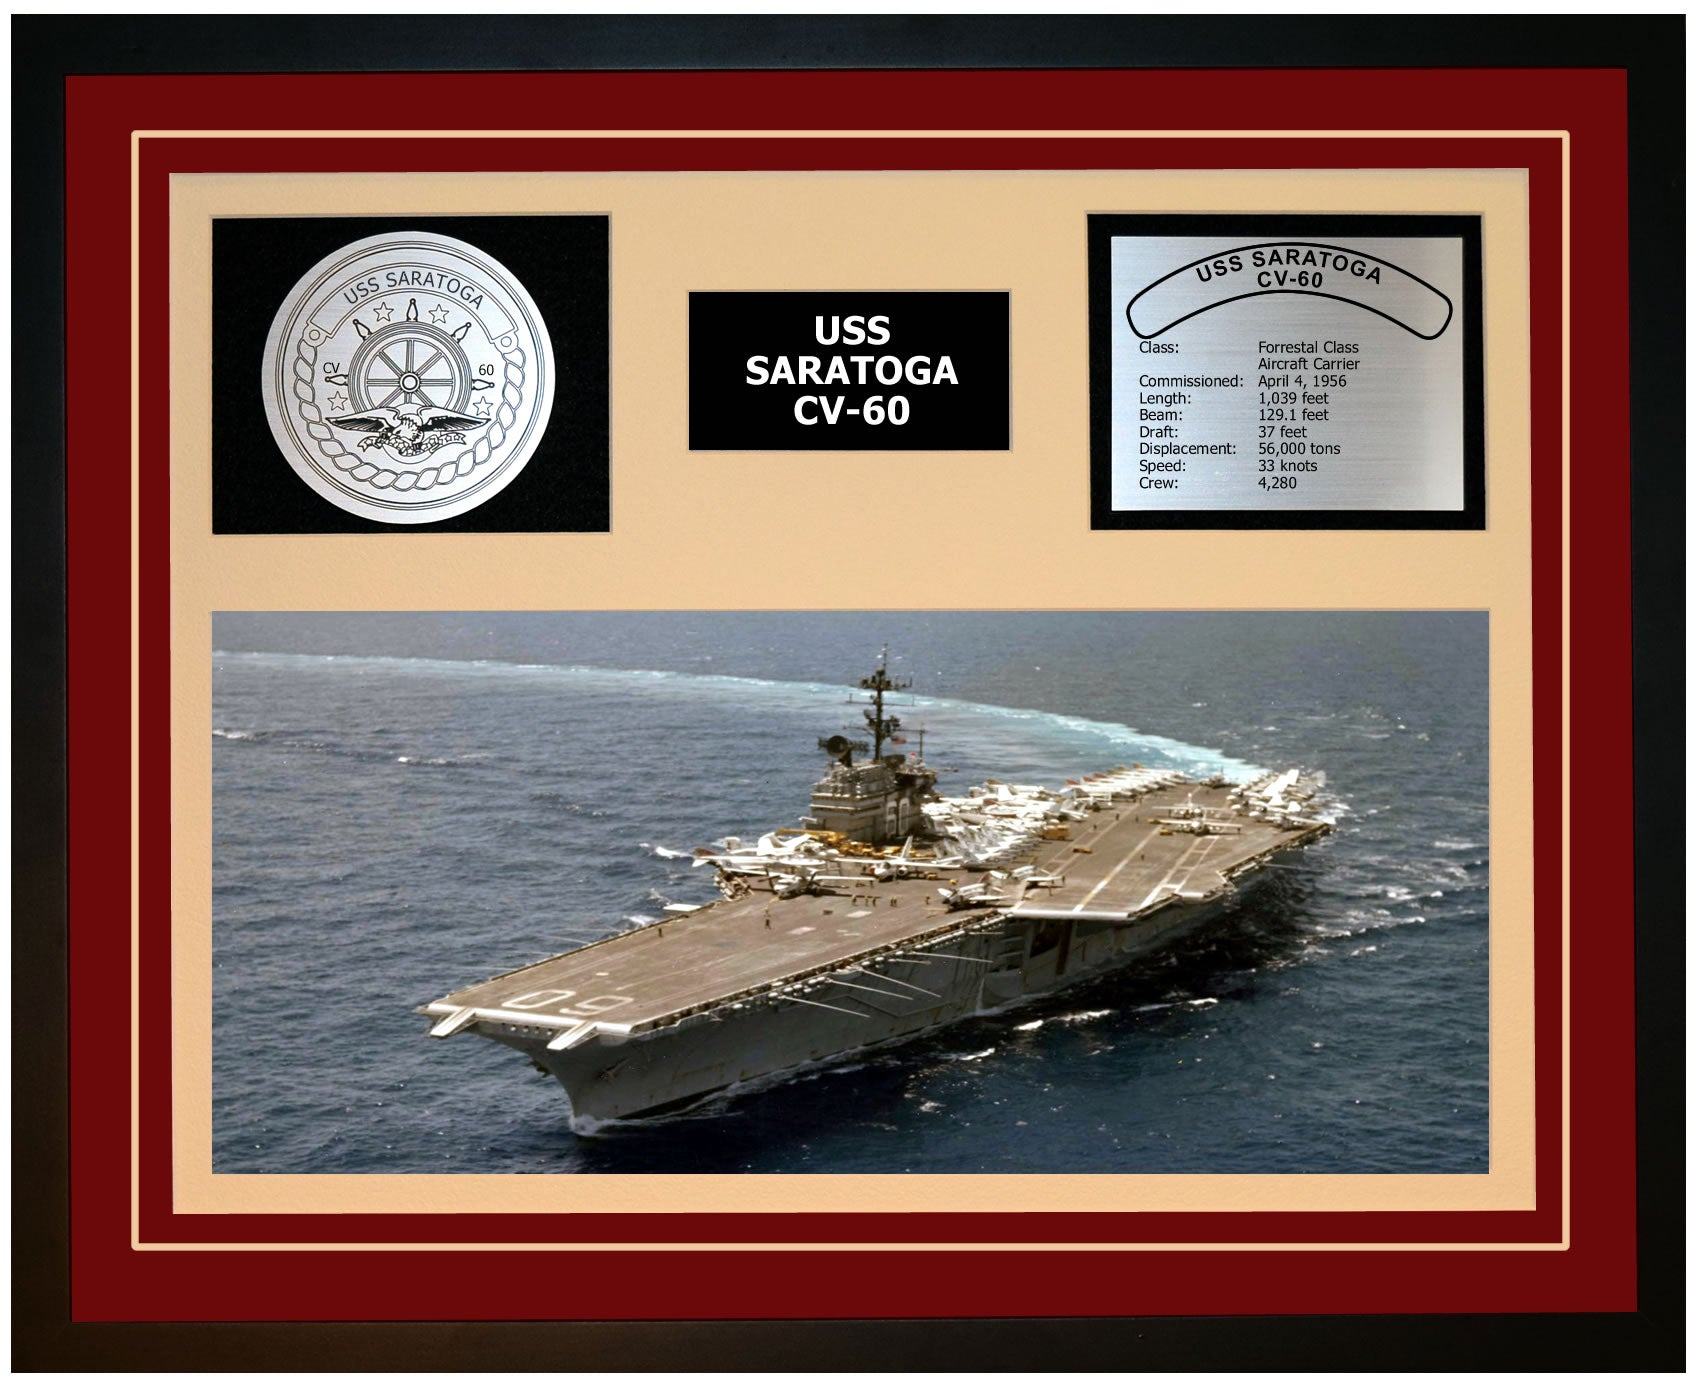 USS SARATOGA CV-60 Framed Navy Ship Display Burgundy